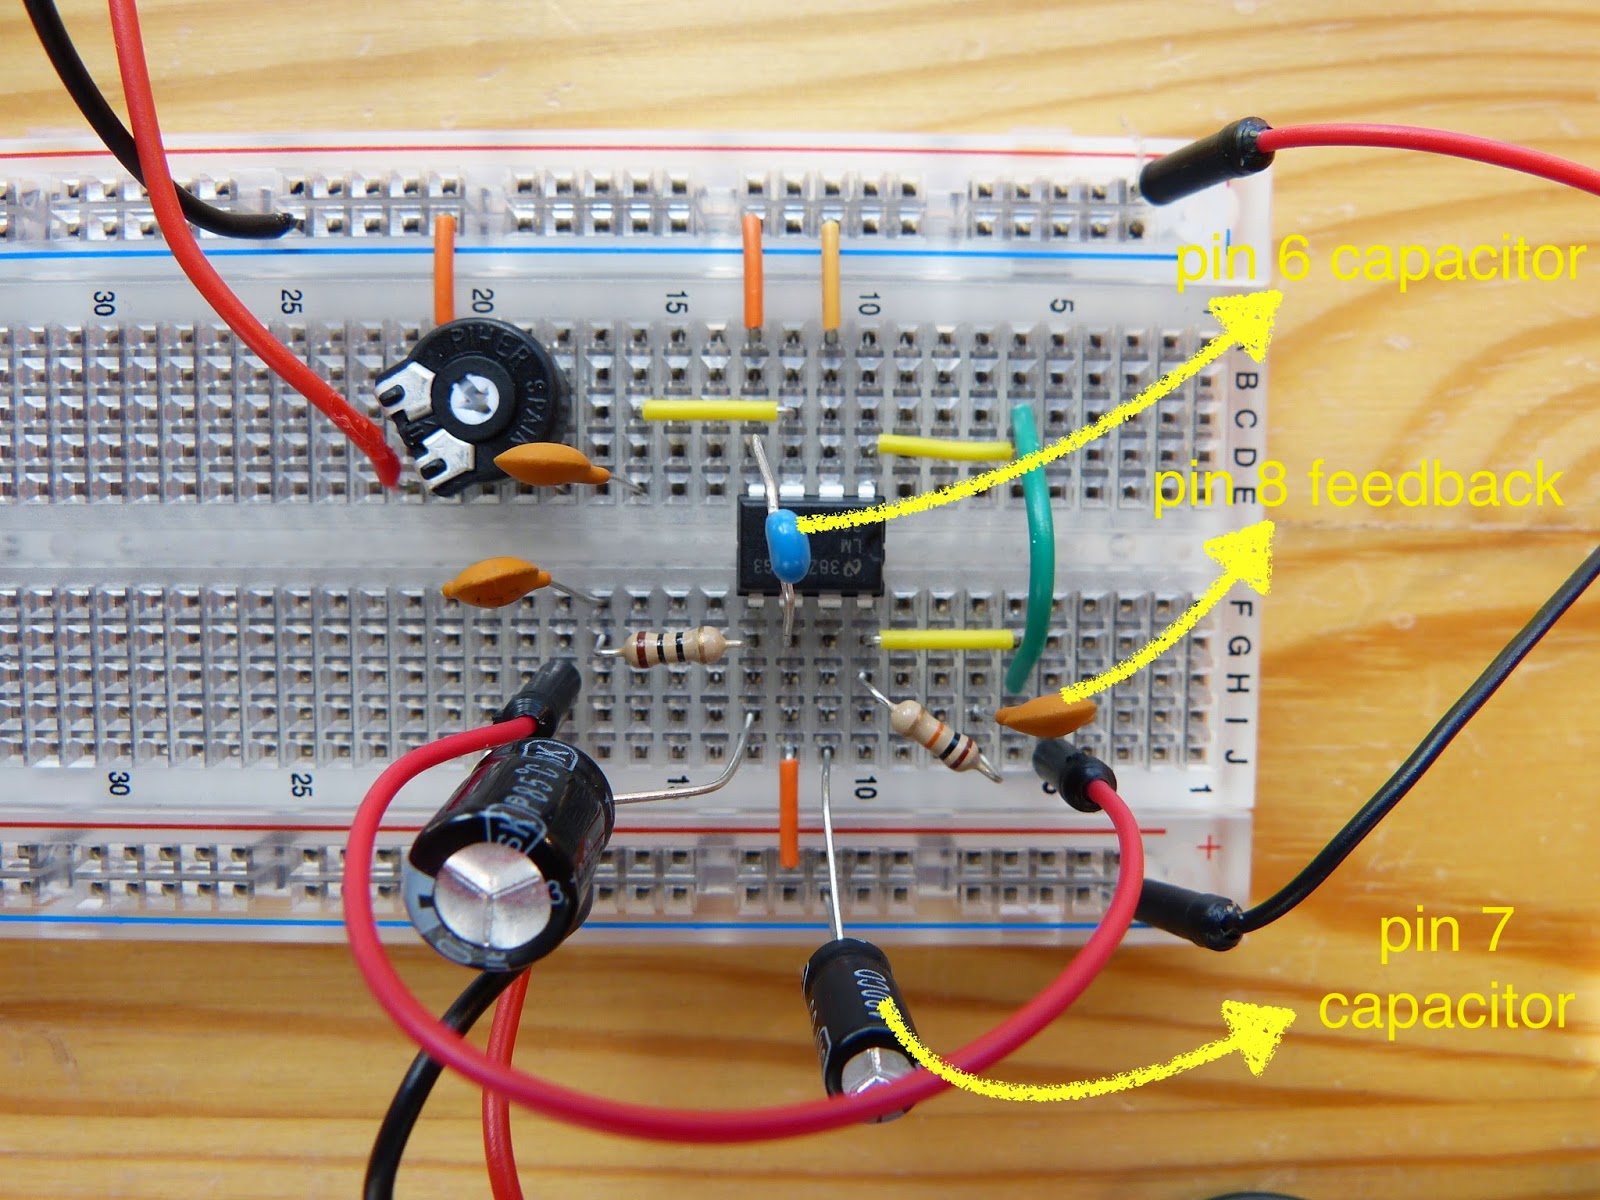 Create A Simple Audio Amplifier Lm386 Part 2 Homehack Circuit Using Improved With Significantly Reduced Noise The 10uf Capacitor Between Pin1 And 8 Is Removed I Didnt Need Additional Gain